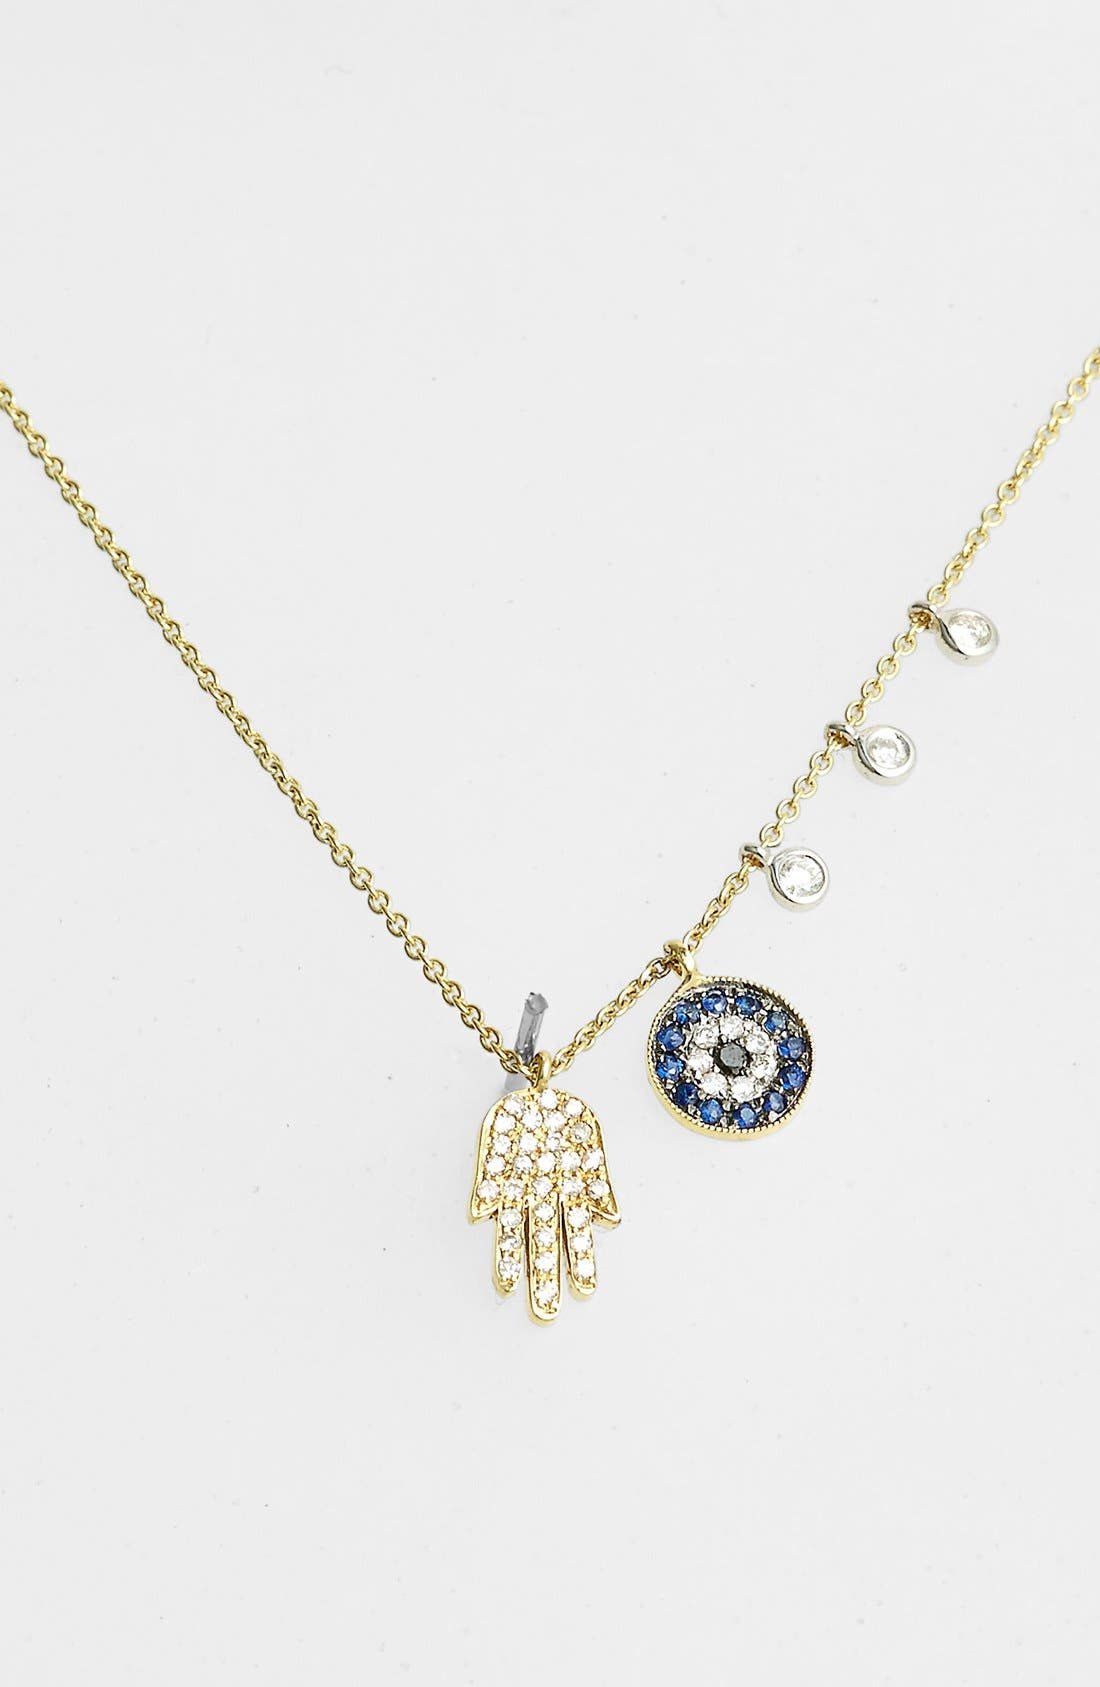 Desert Infusion Diamond & Sapphire Pendant Necklace,                         Main,                         color, YELLOW GOLD/ BLUE SAPPHIRE